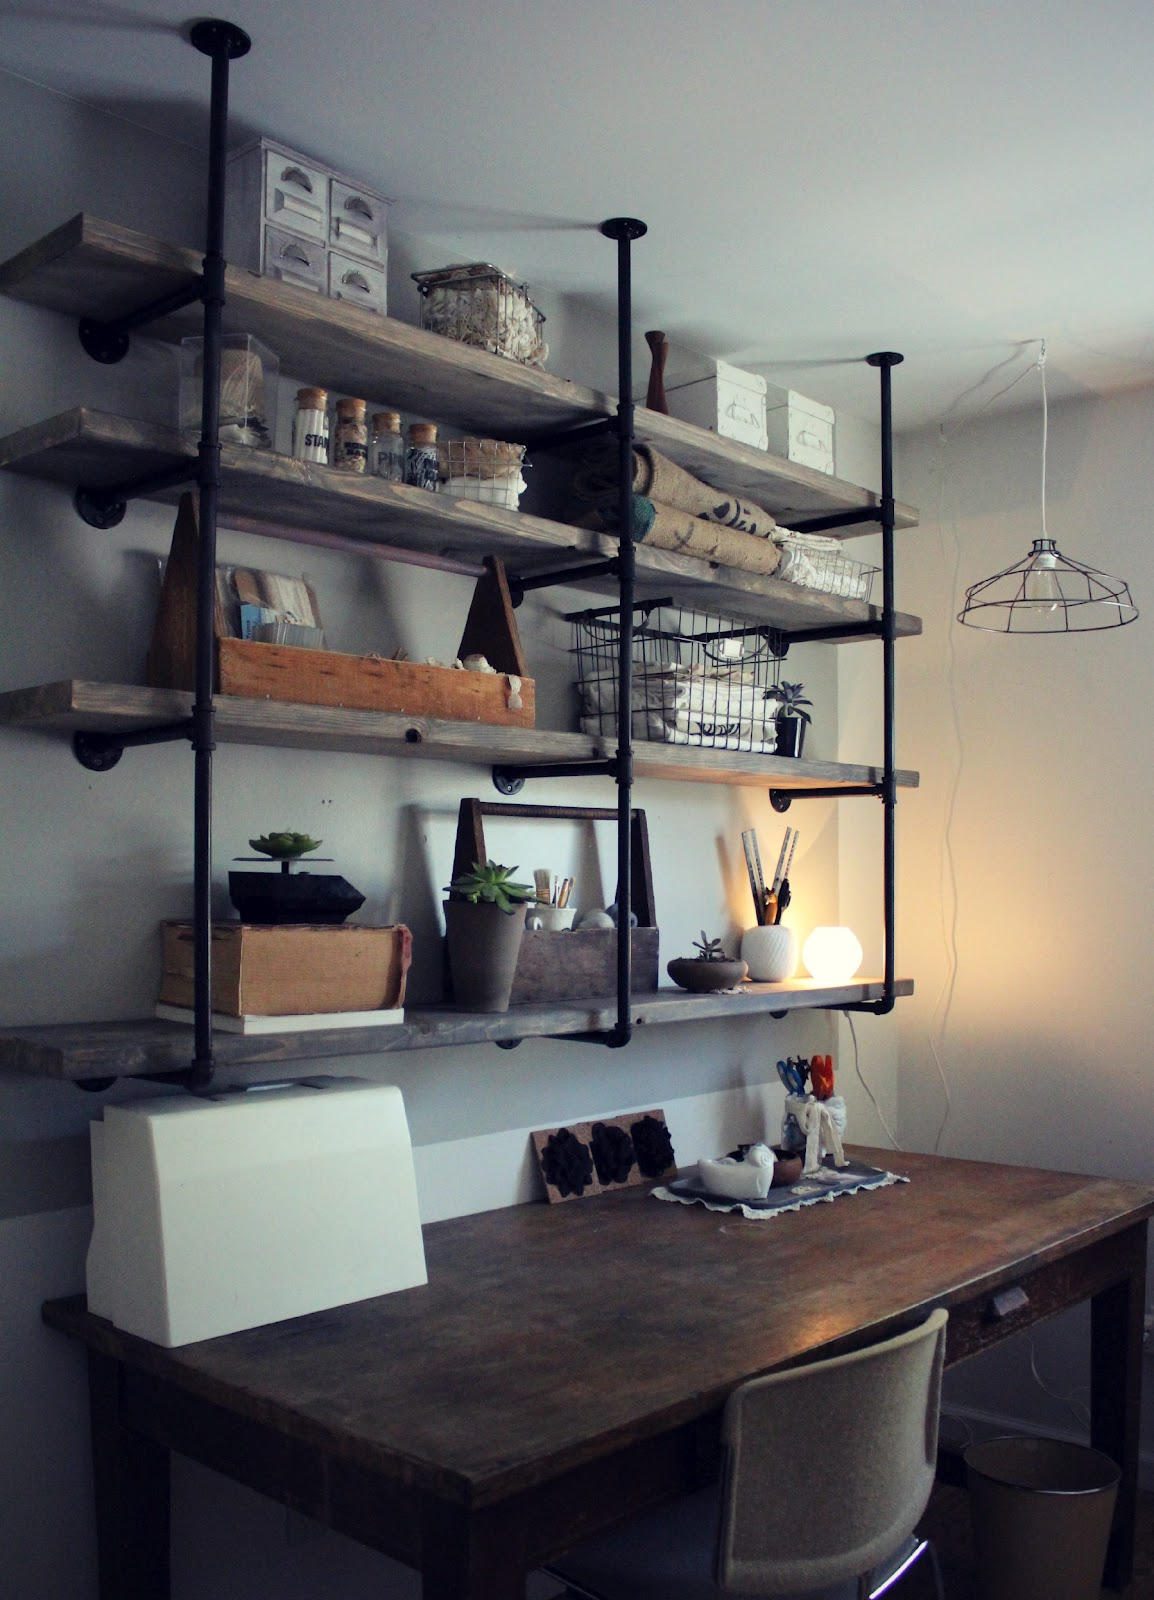 Sylvie liv industrial rustic shelf tutorial for Diy industrial bookshelf